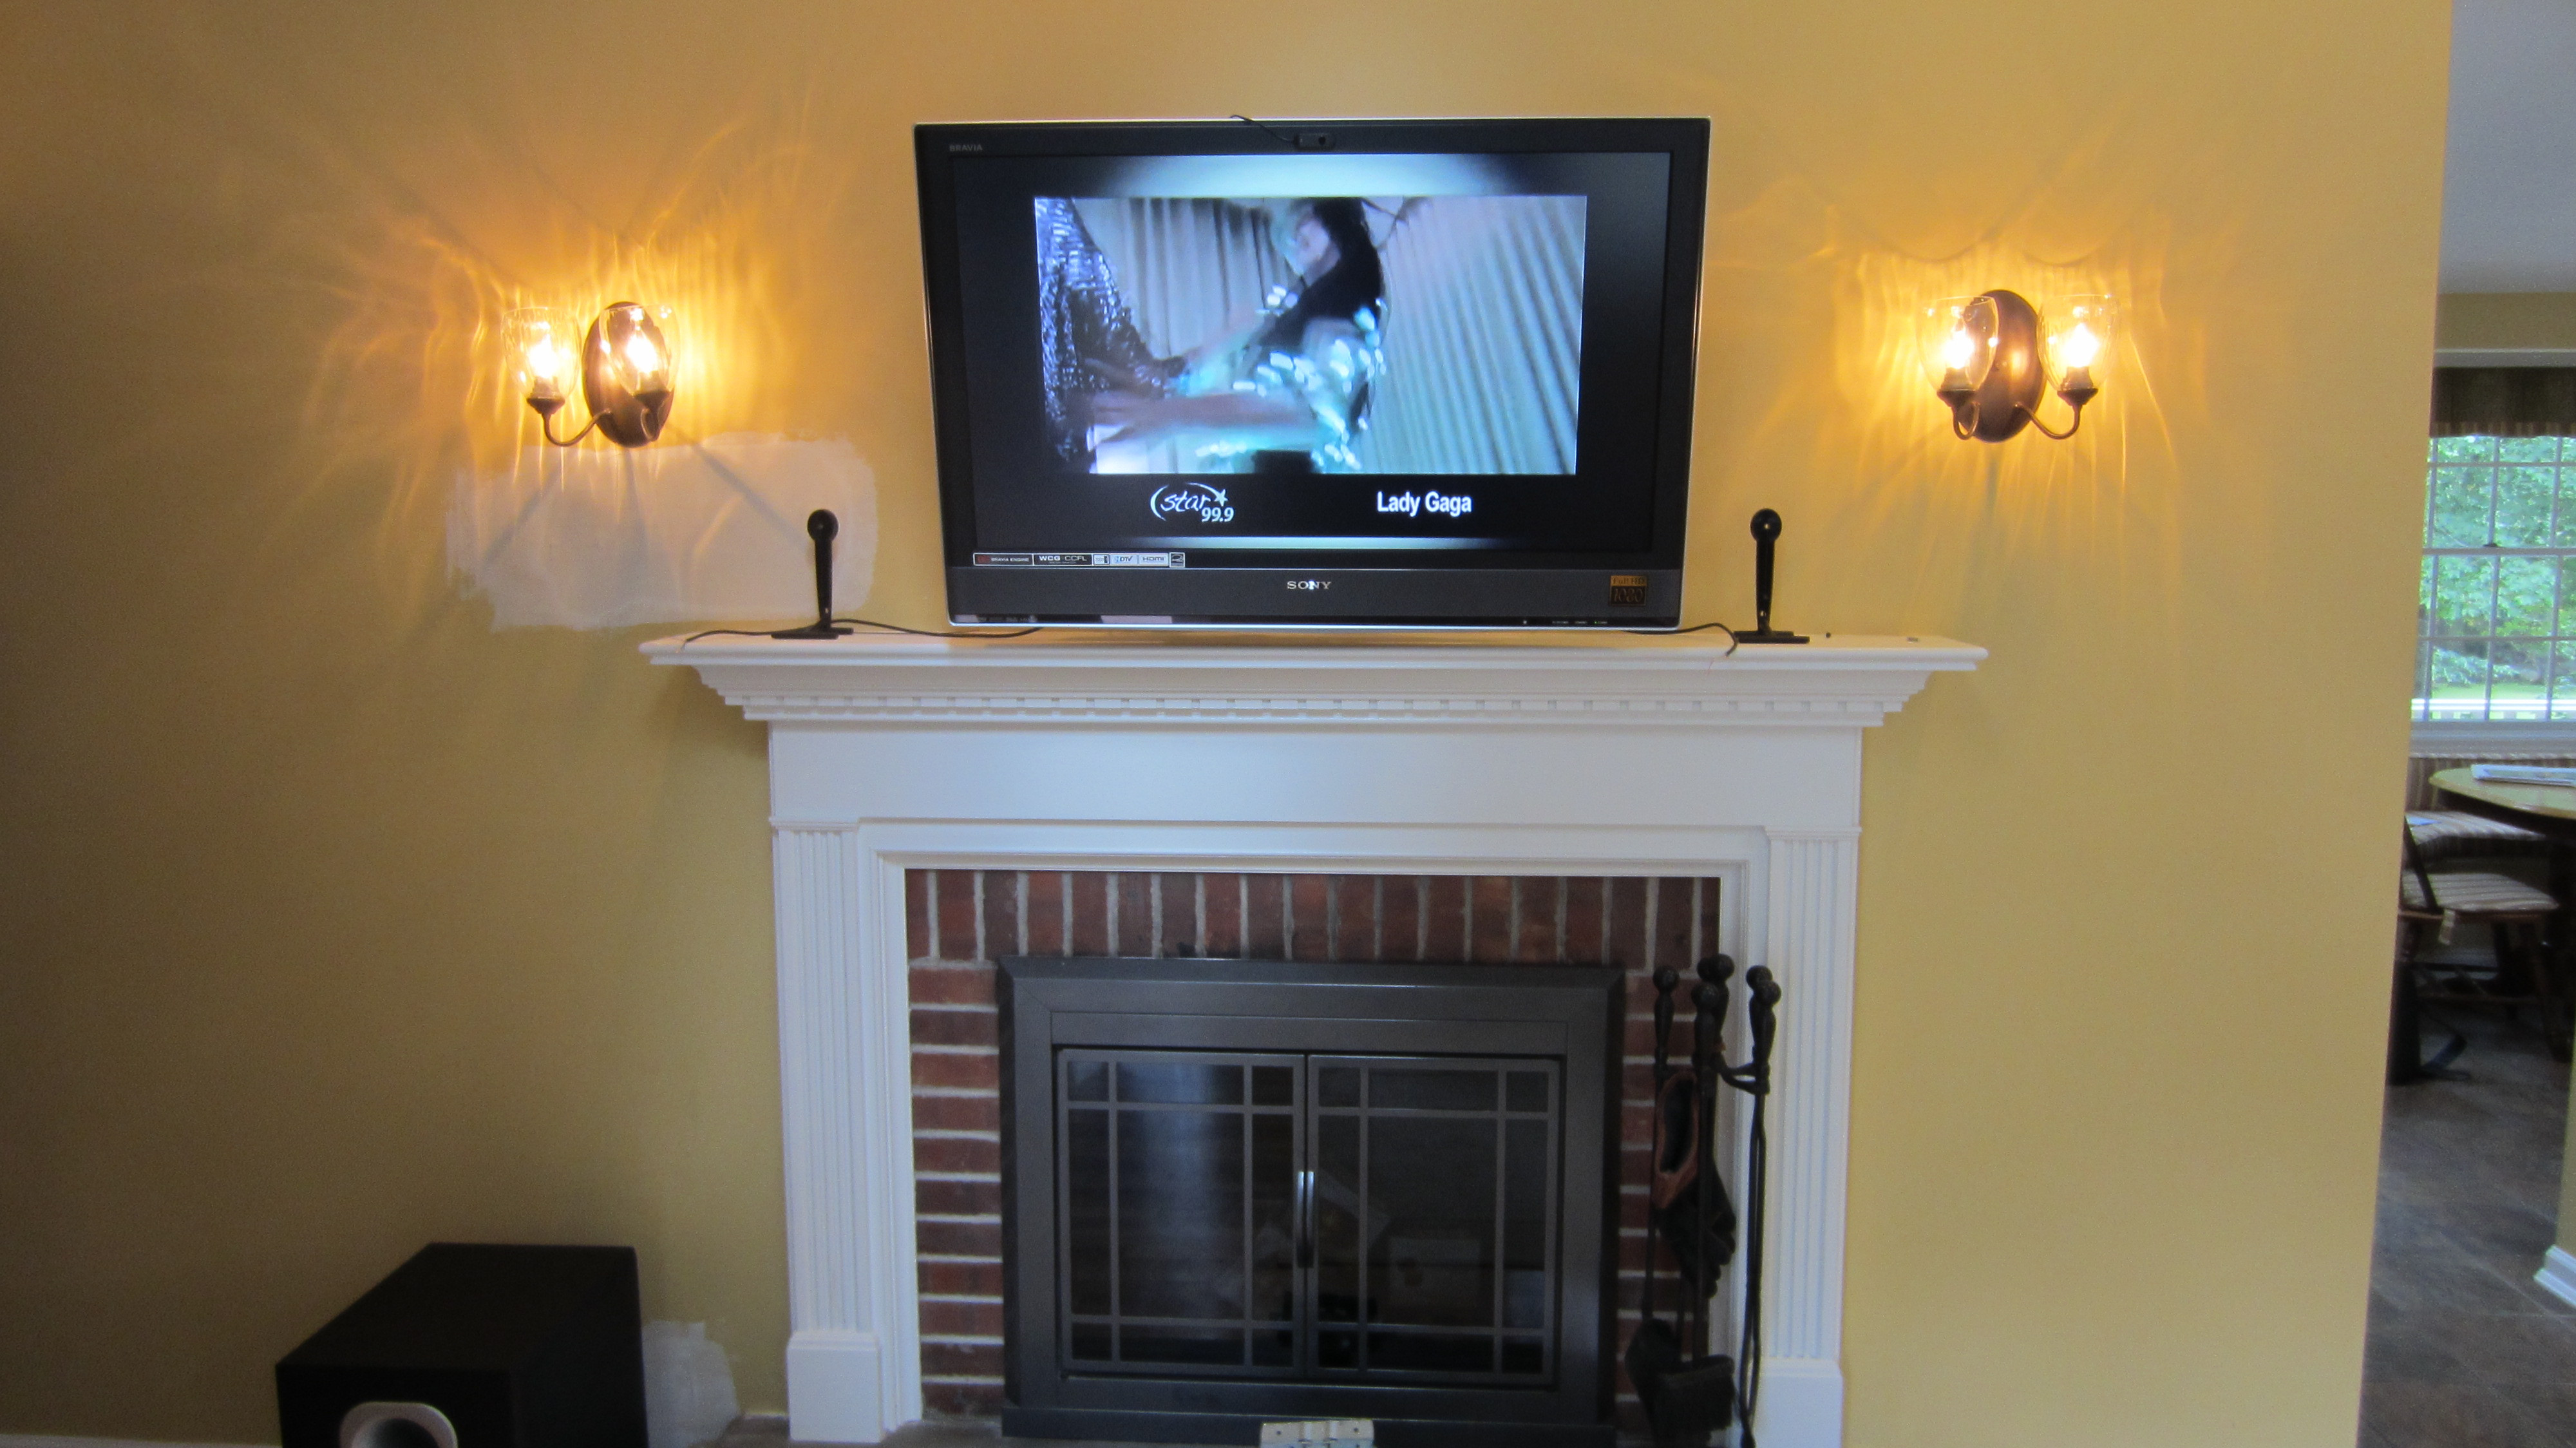 Best ideas about Mounting Tv Above Fireplace . Save or Pin blog Home Theater Installation Now.